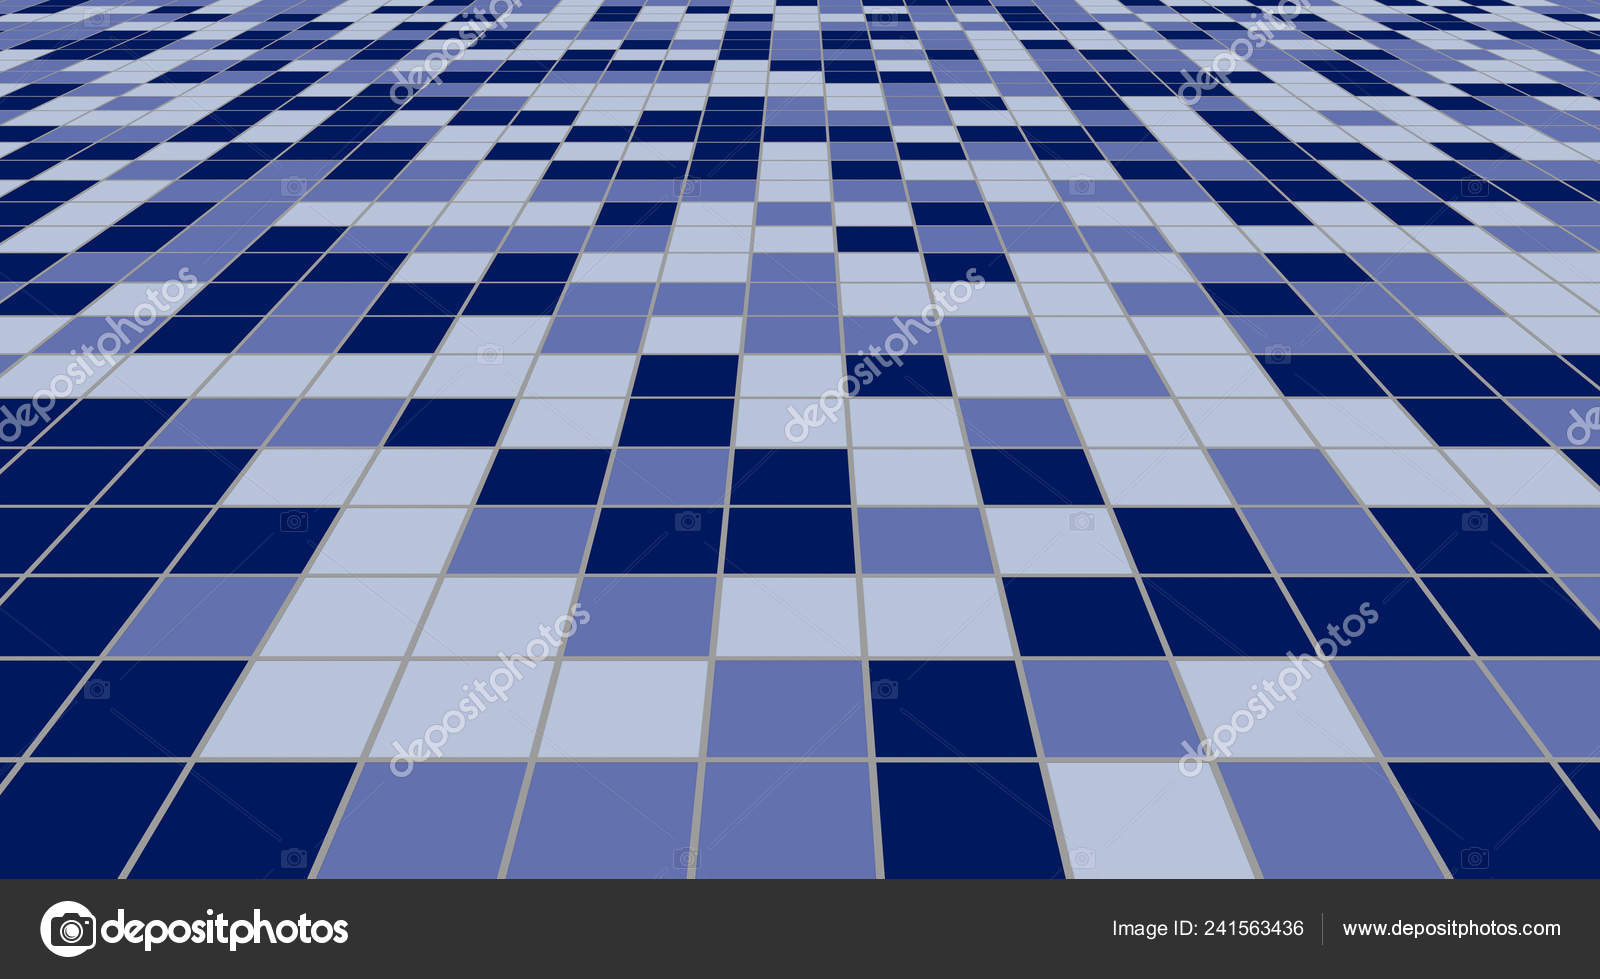 mosaic square tiles flooring wall decoration wallpaper architecture design pattern stock photo image by c tampatra hotmail com 241563436